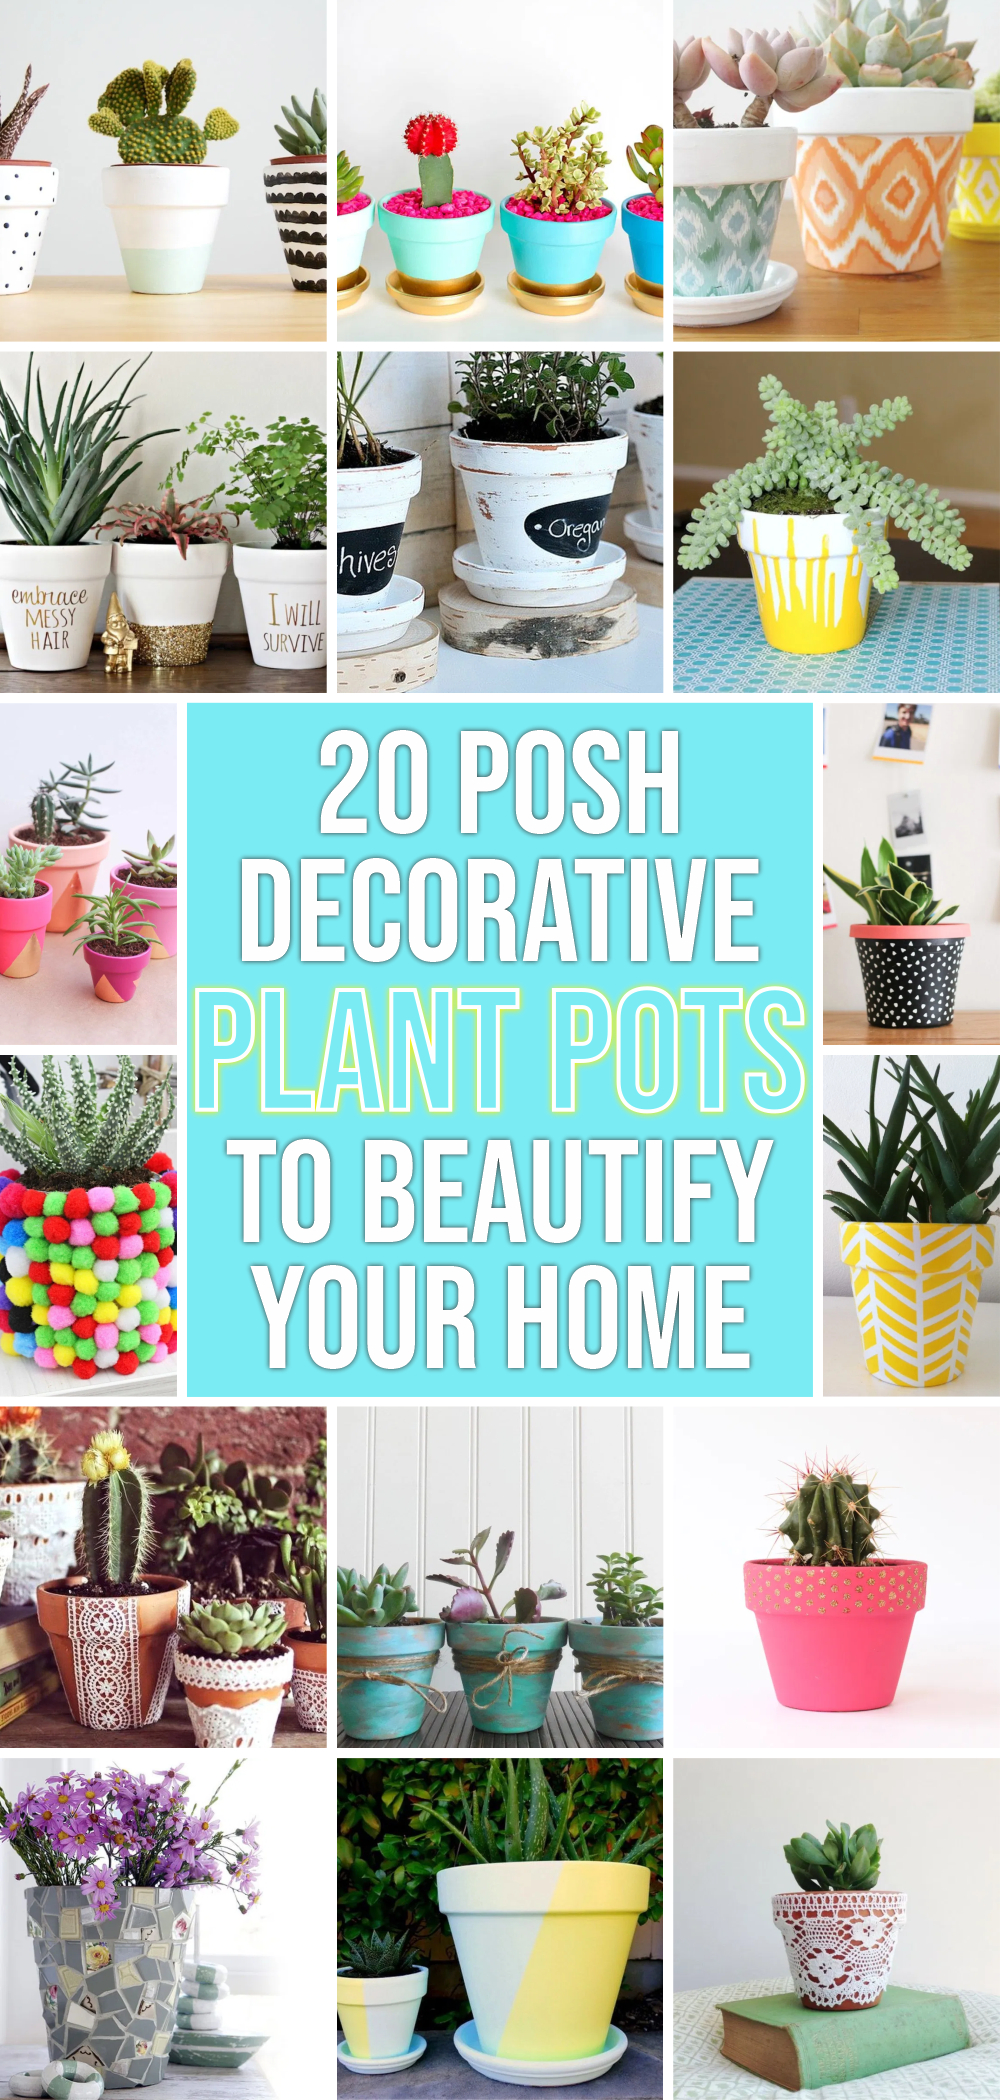 20 posh decorative plant pots to beautify your home 1